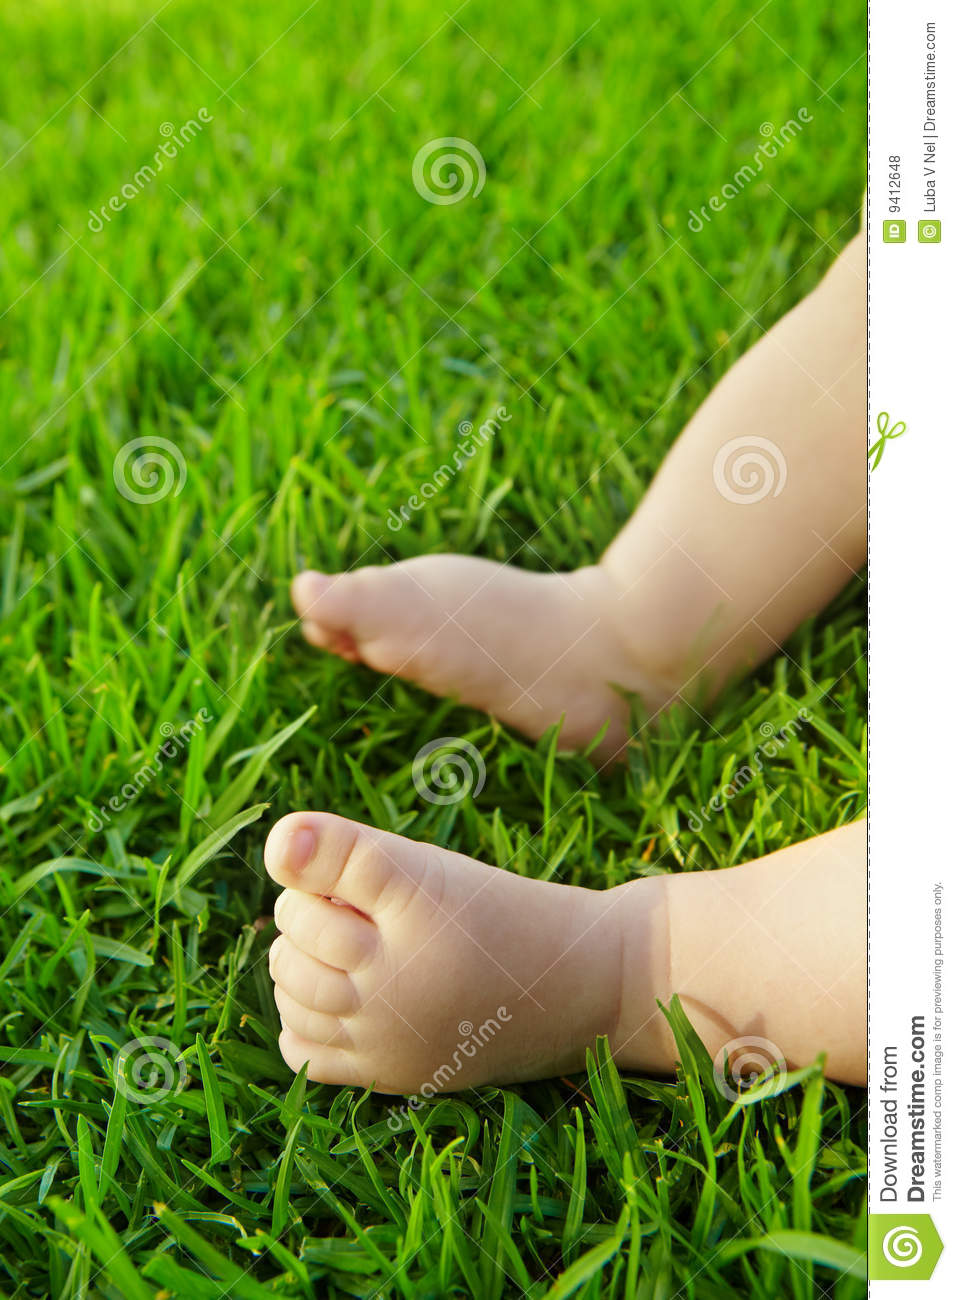 Baby On Grass. Royalty Free Stock Photos